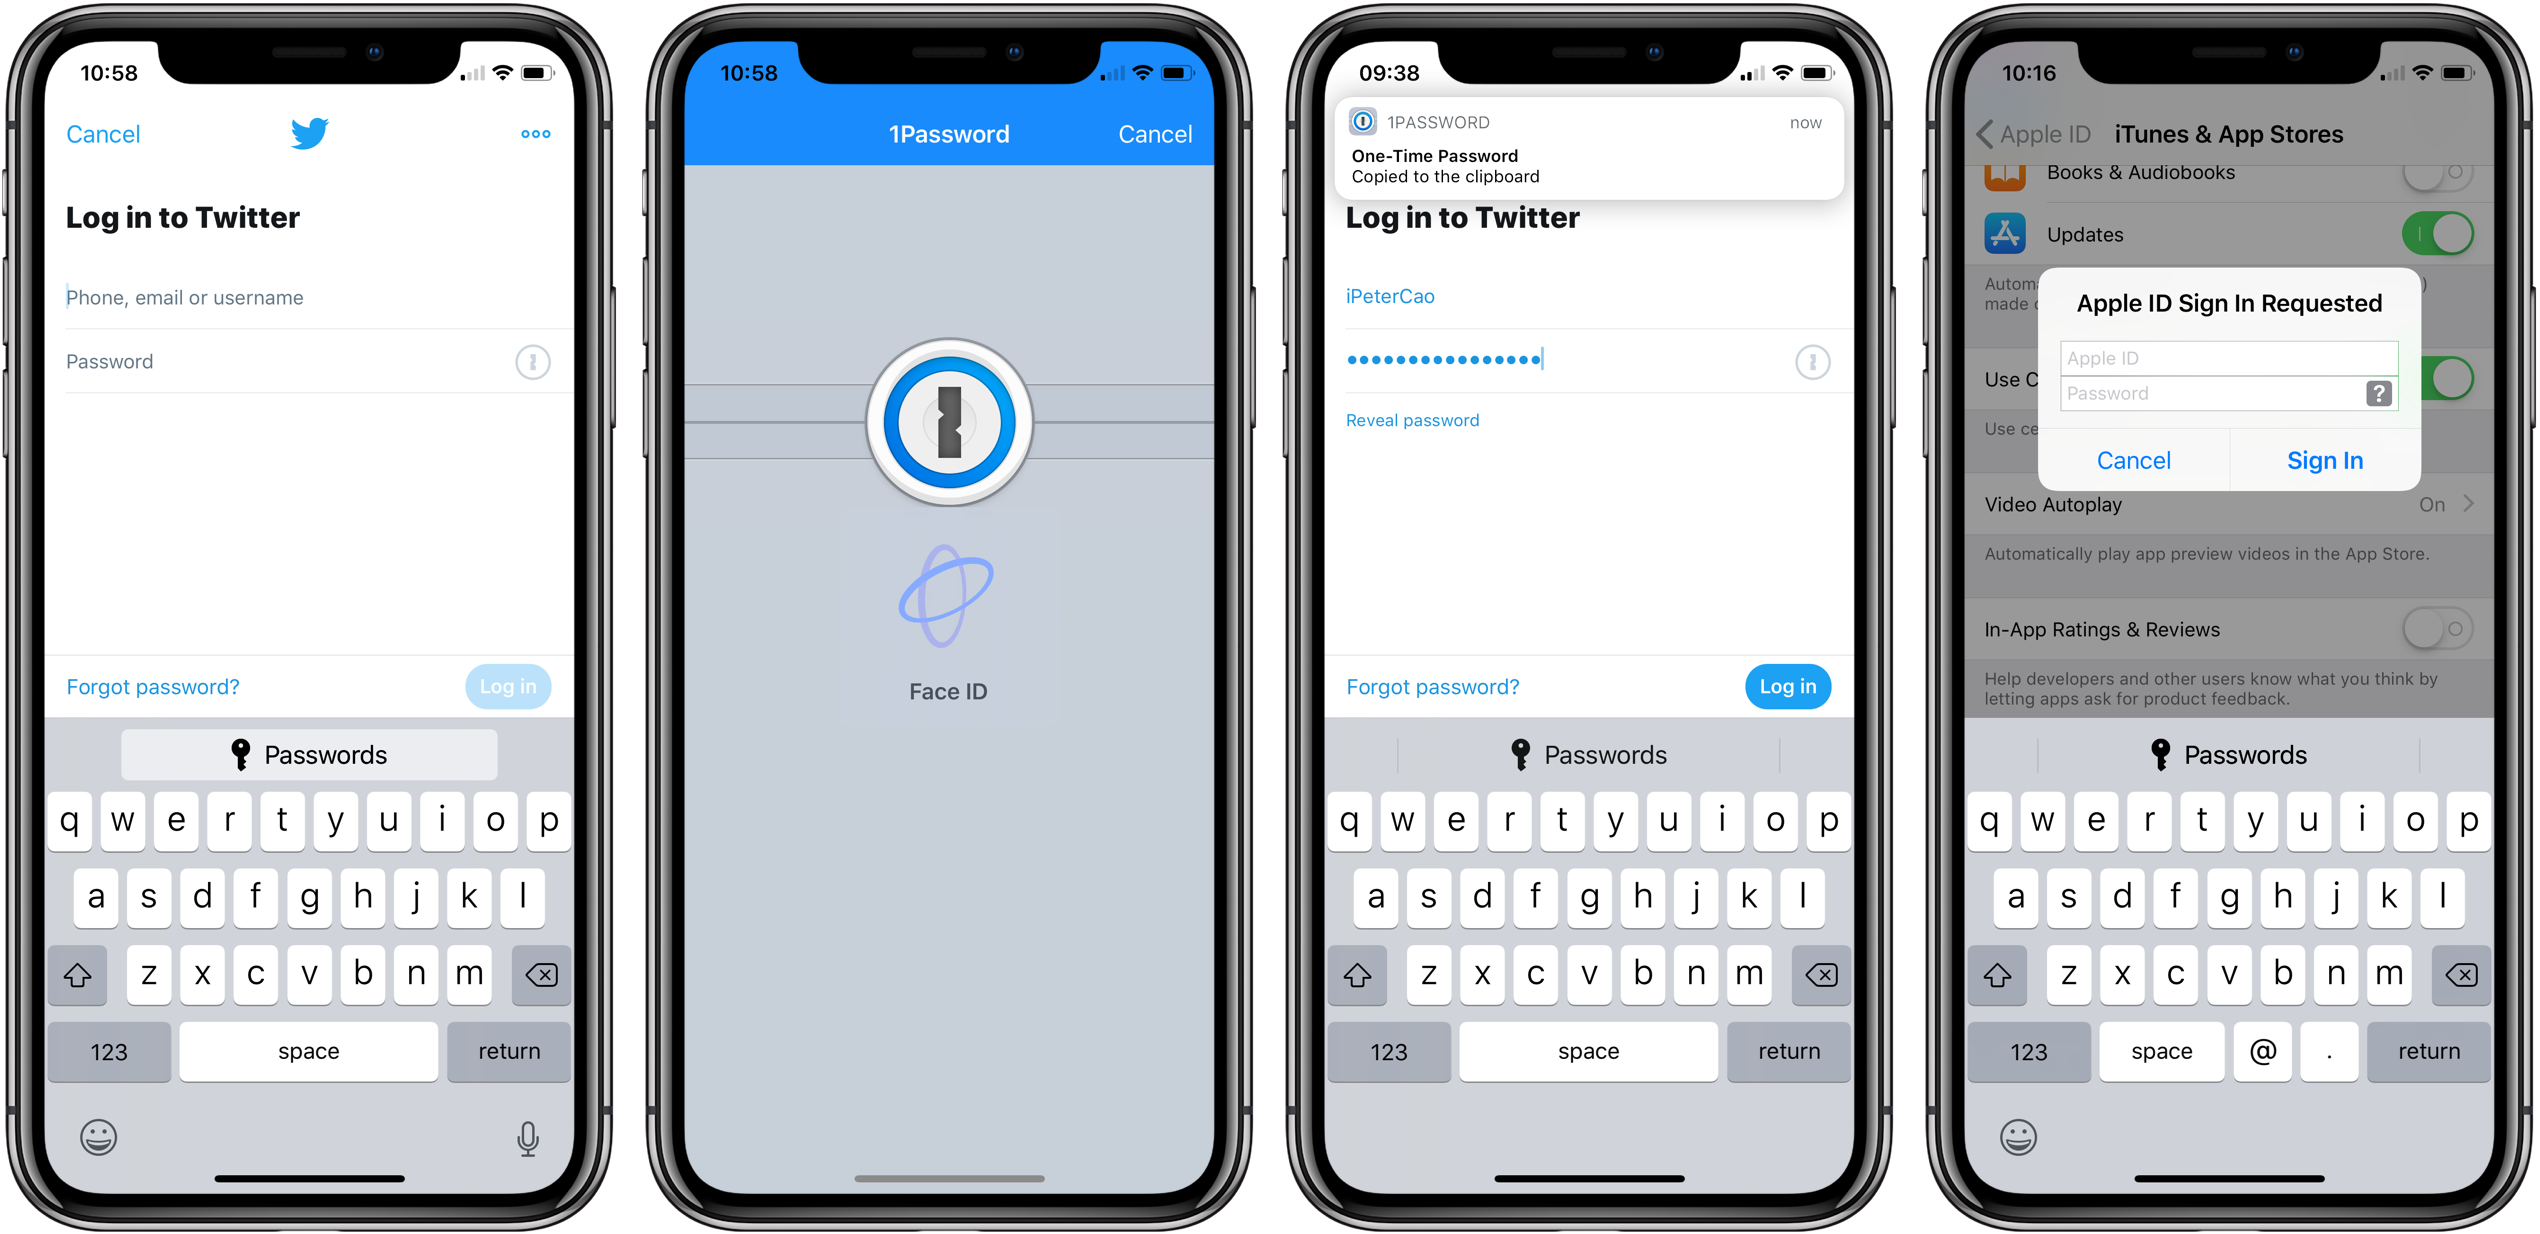 Hands-on with 1Password and iOS 12's Password AutoFill